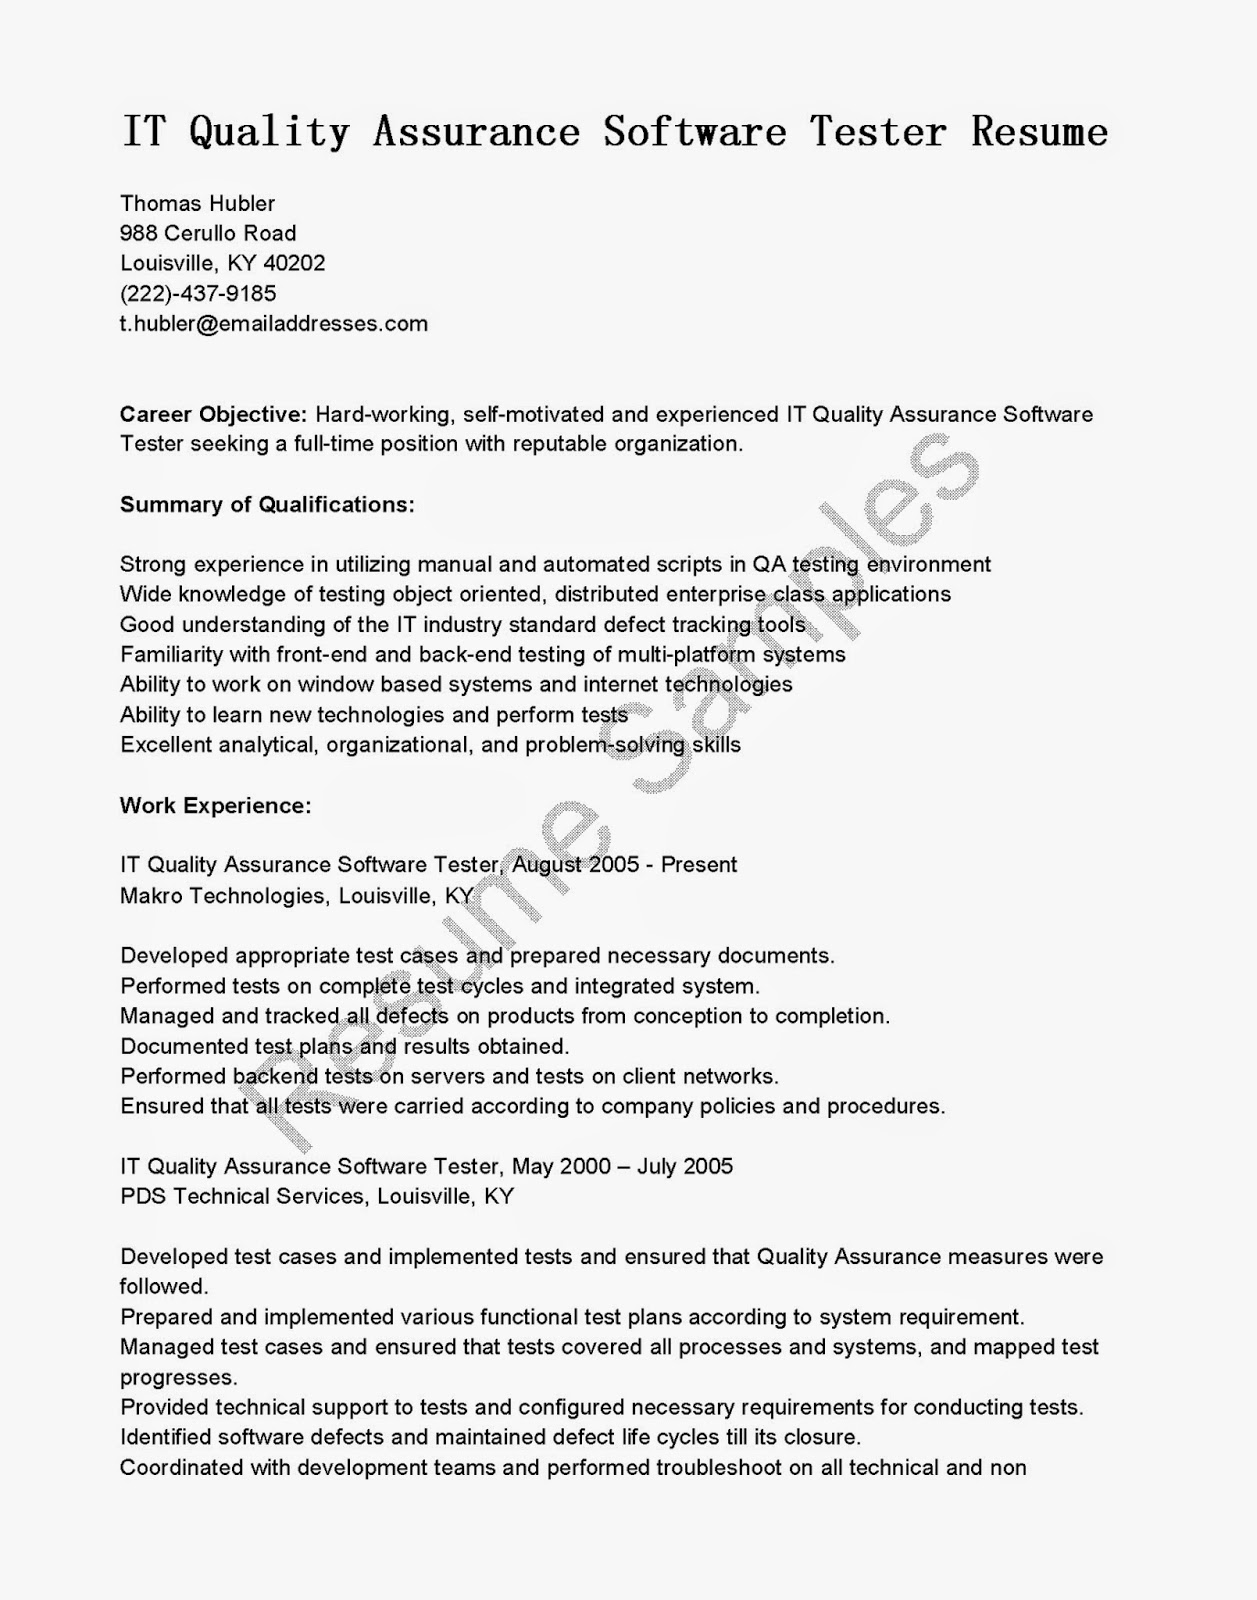 resume sles it quality assurance software tester